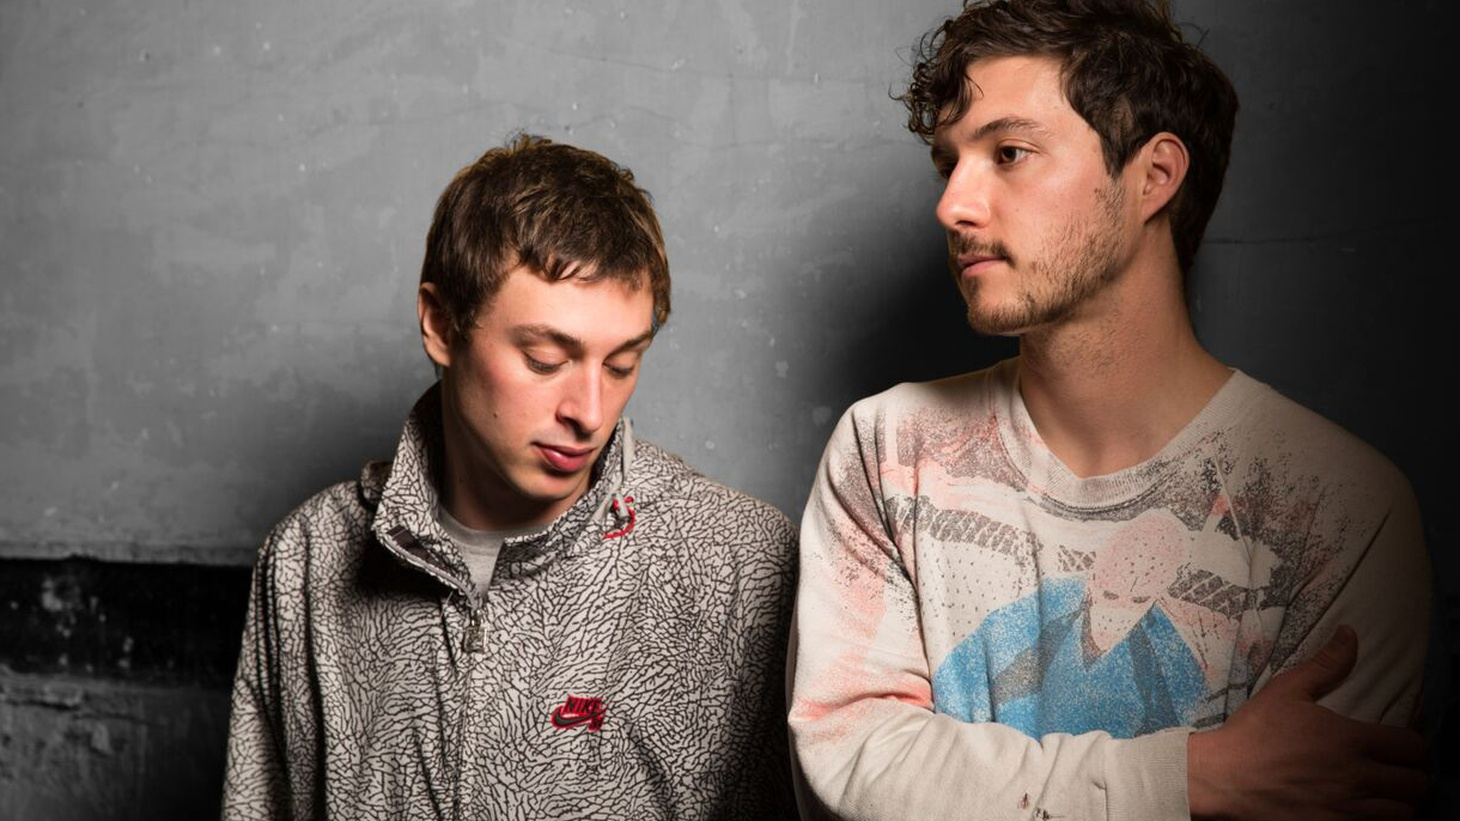 Bi-coastal production duo Painted Palms recall a psychedelic vibe and top it off with 21st Century beats on their much-anticipated new album.